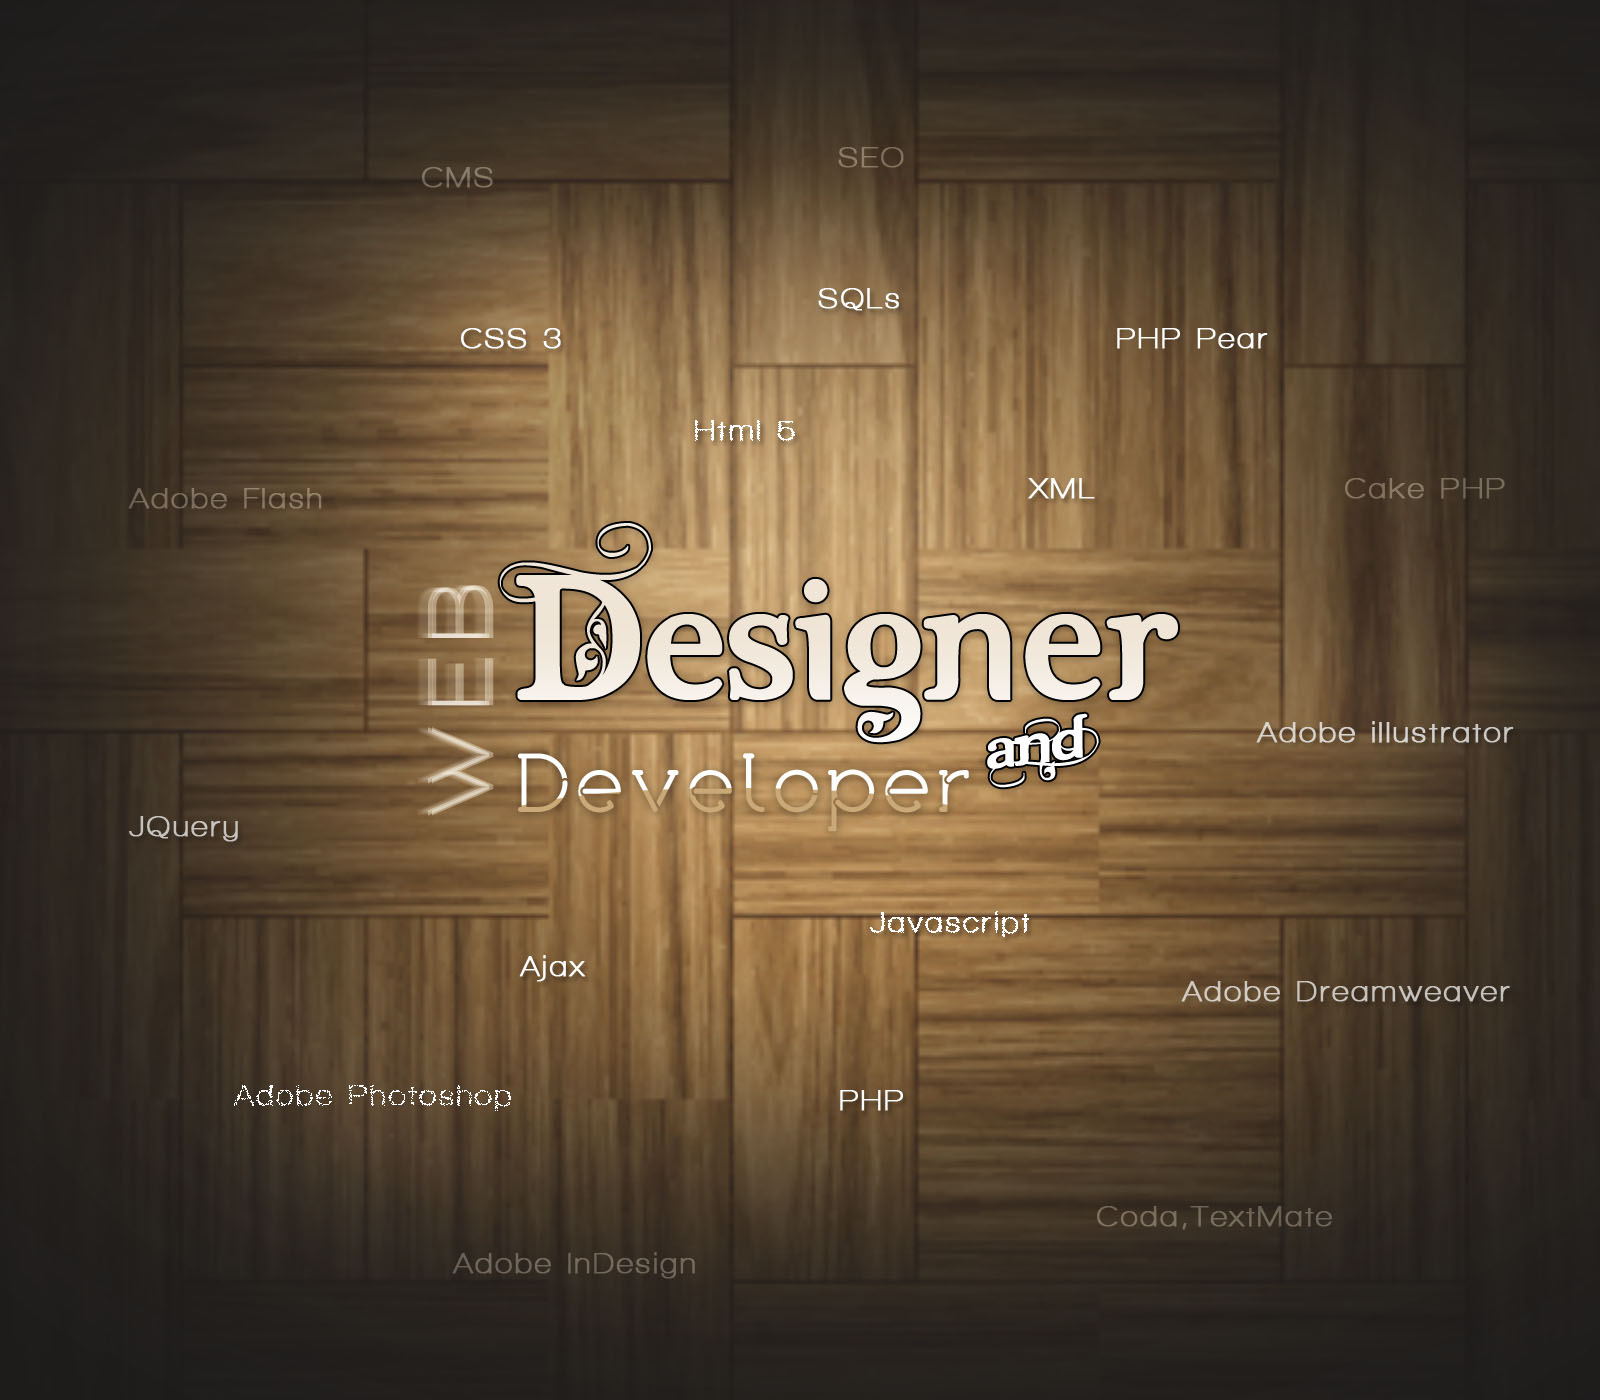 Everything-we-do-is-designed-whether-we-re-producing-a-website-or-an-App-Design-is-really-the-cre-wallpaper-wp3405294